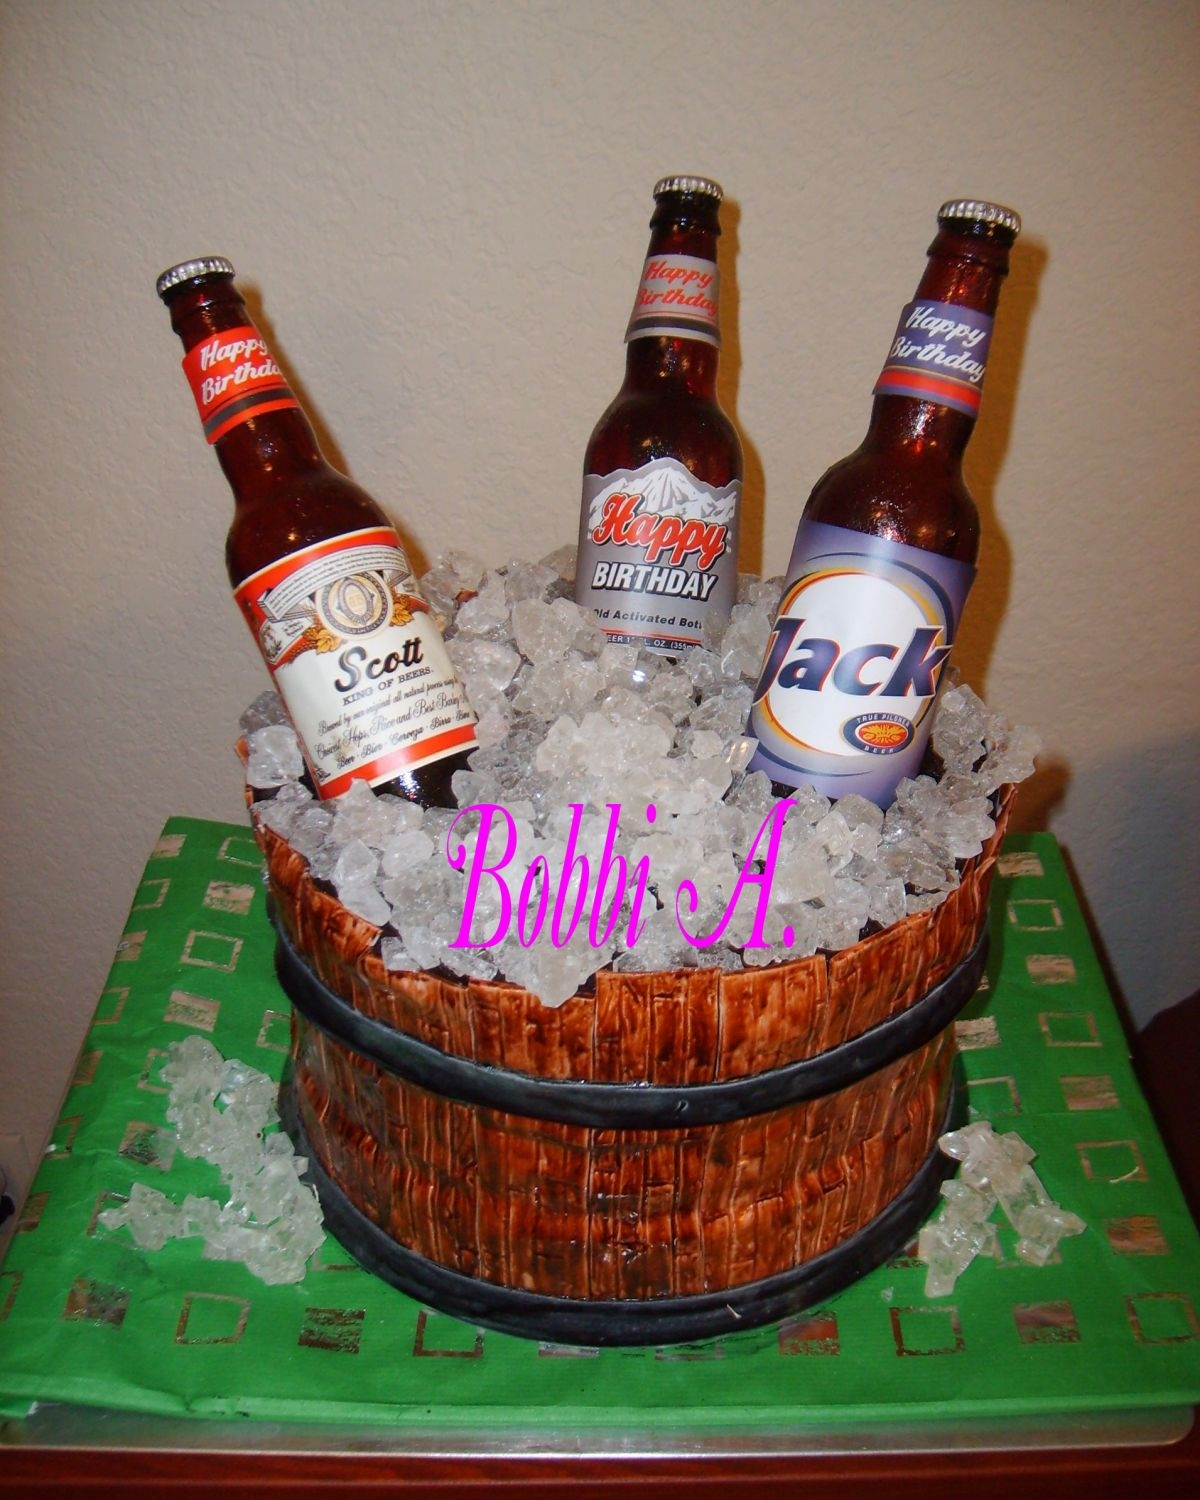 Beer Barrel  2 layer black forest cake with sugar bottles and rock candy ice. Thanks to all who posted pics that inspired me to attempt this one myself...